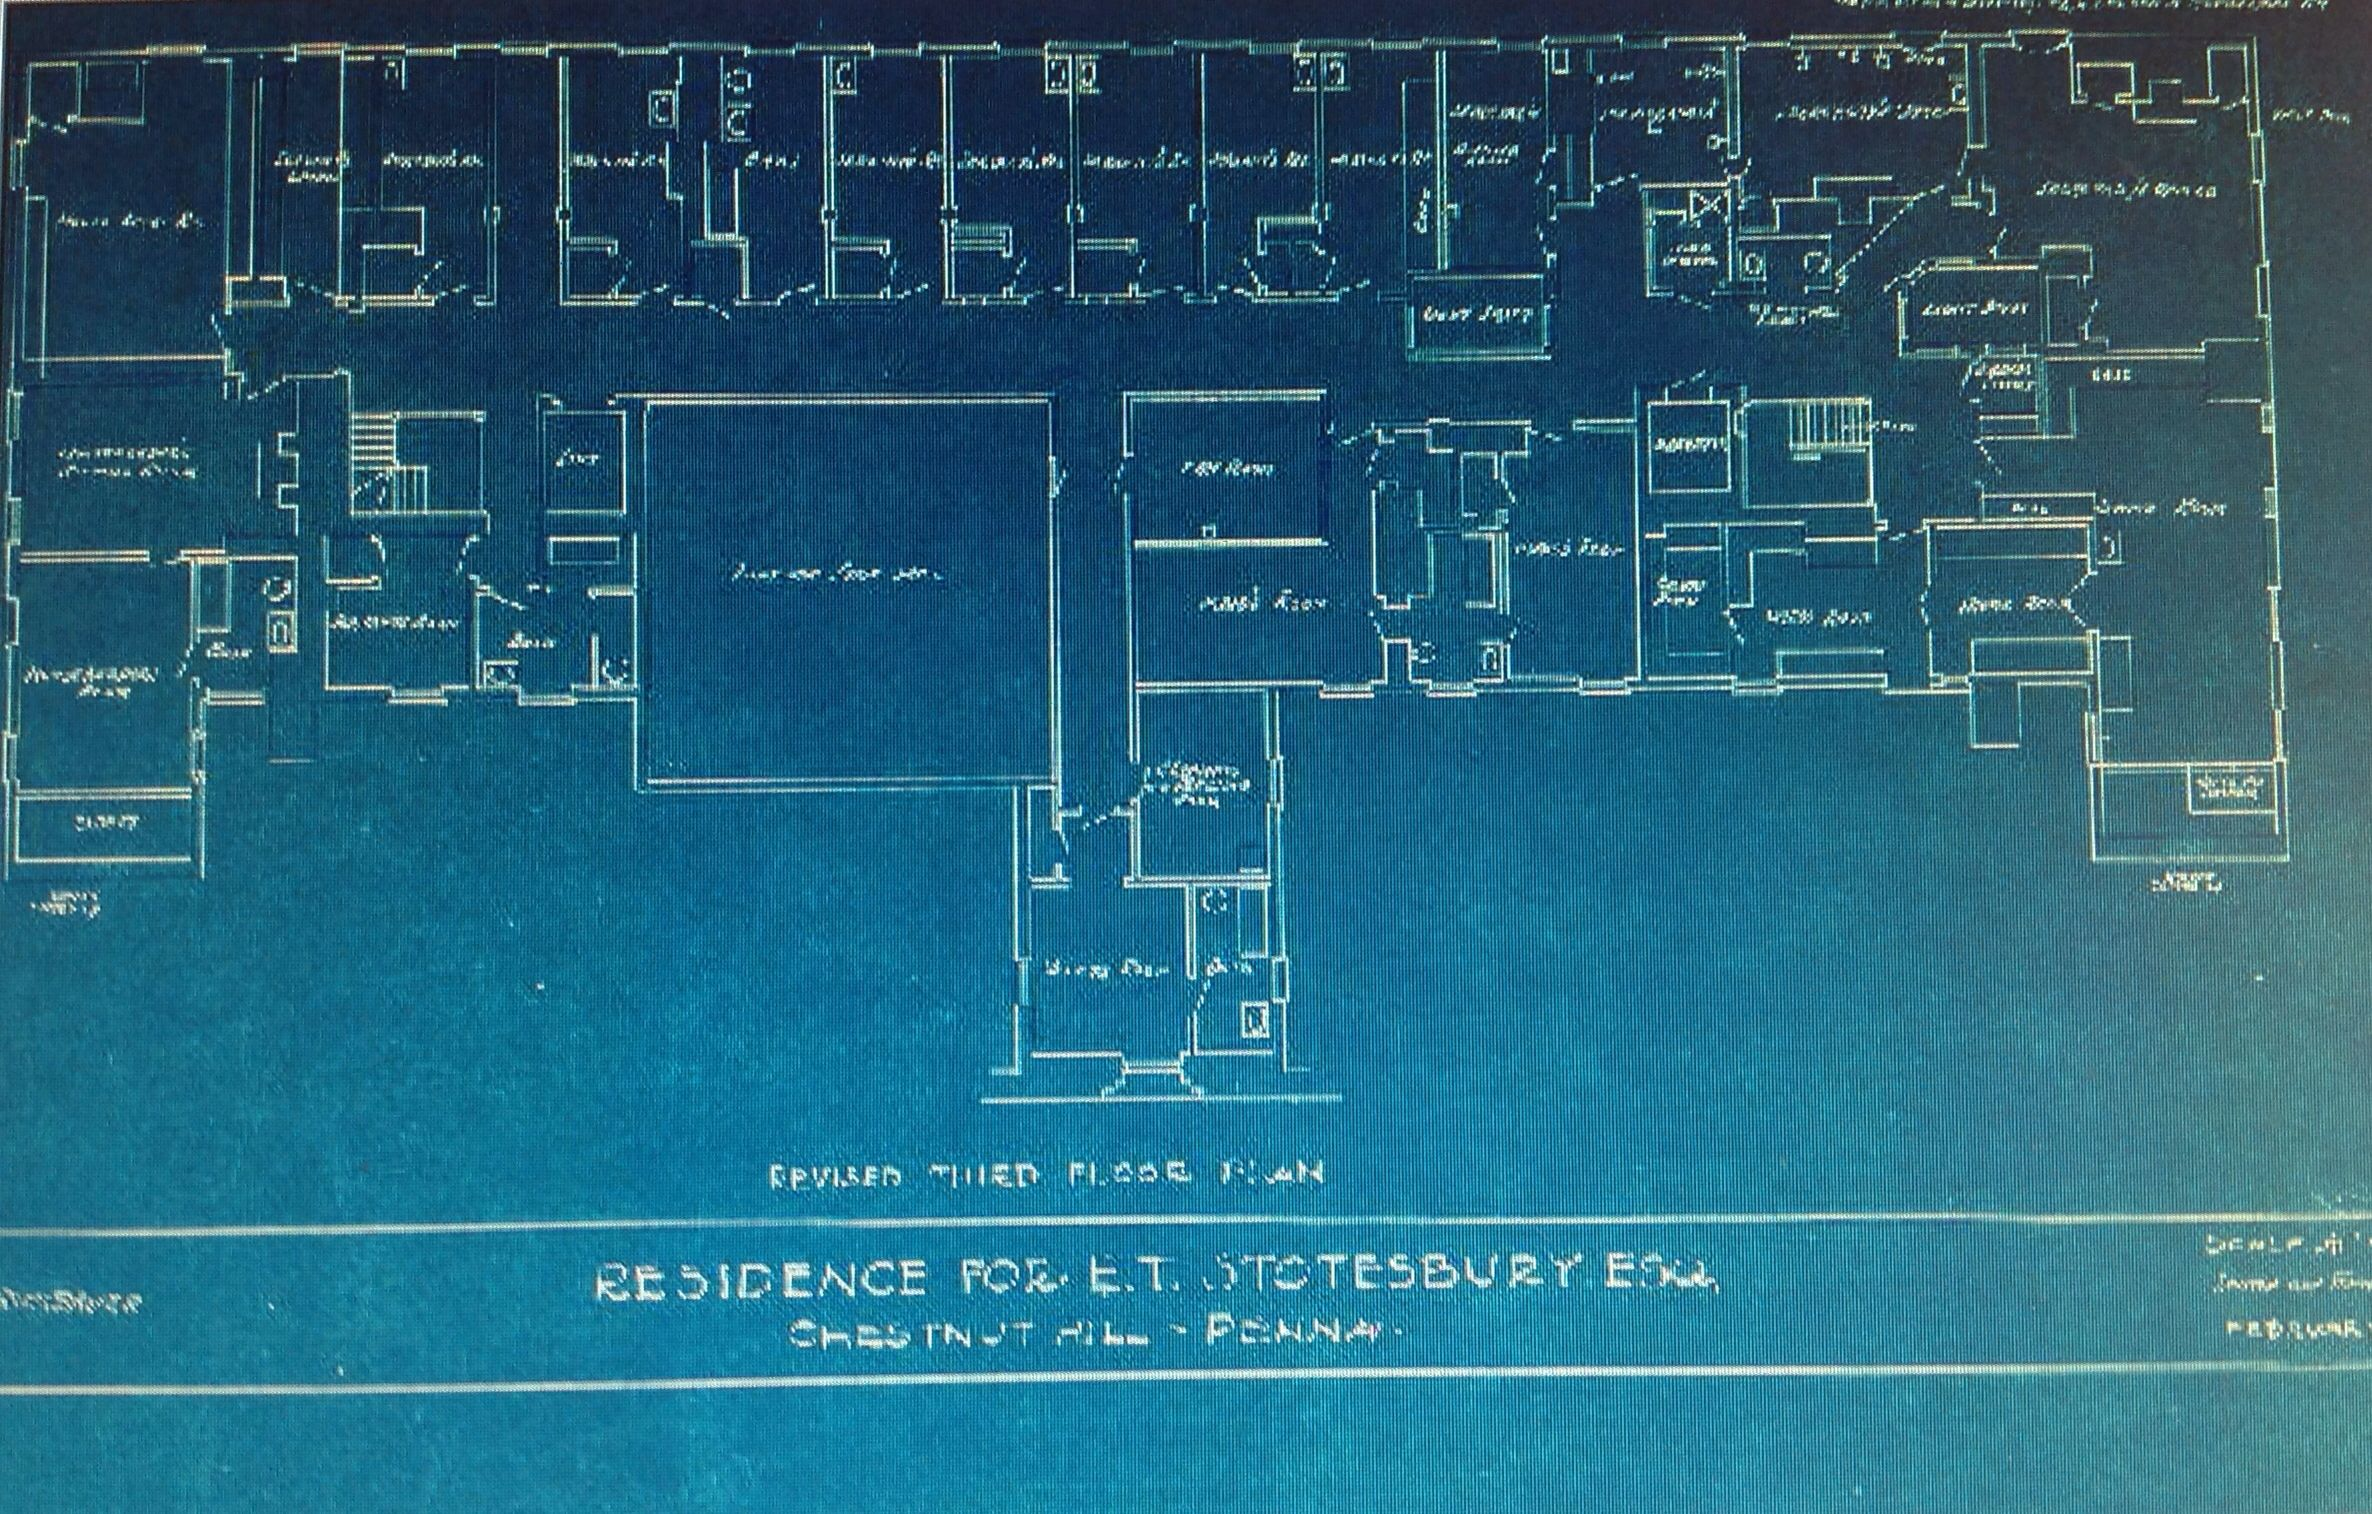 Pin On Architectural Floor Plans